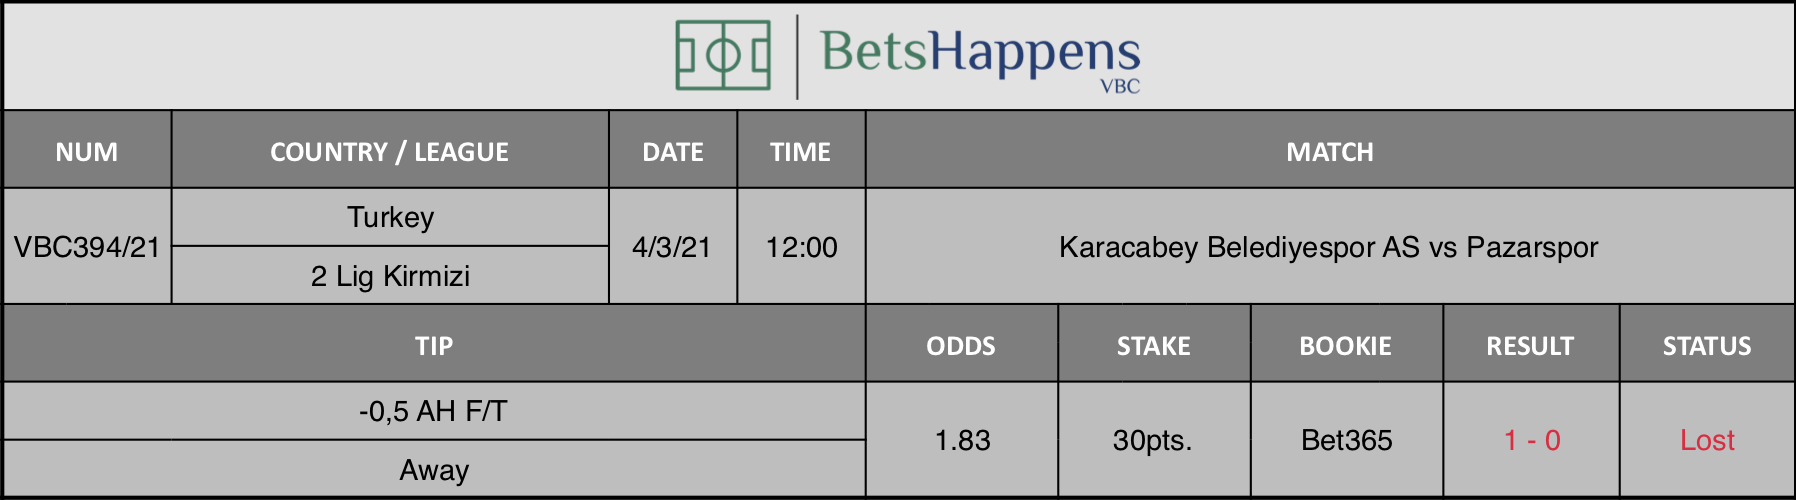 Results of our tip for the Karacabey Belediyespor AS vs Pazarspor match where -0,5 AH F/T Away is recommended.